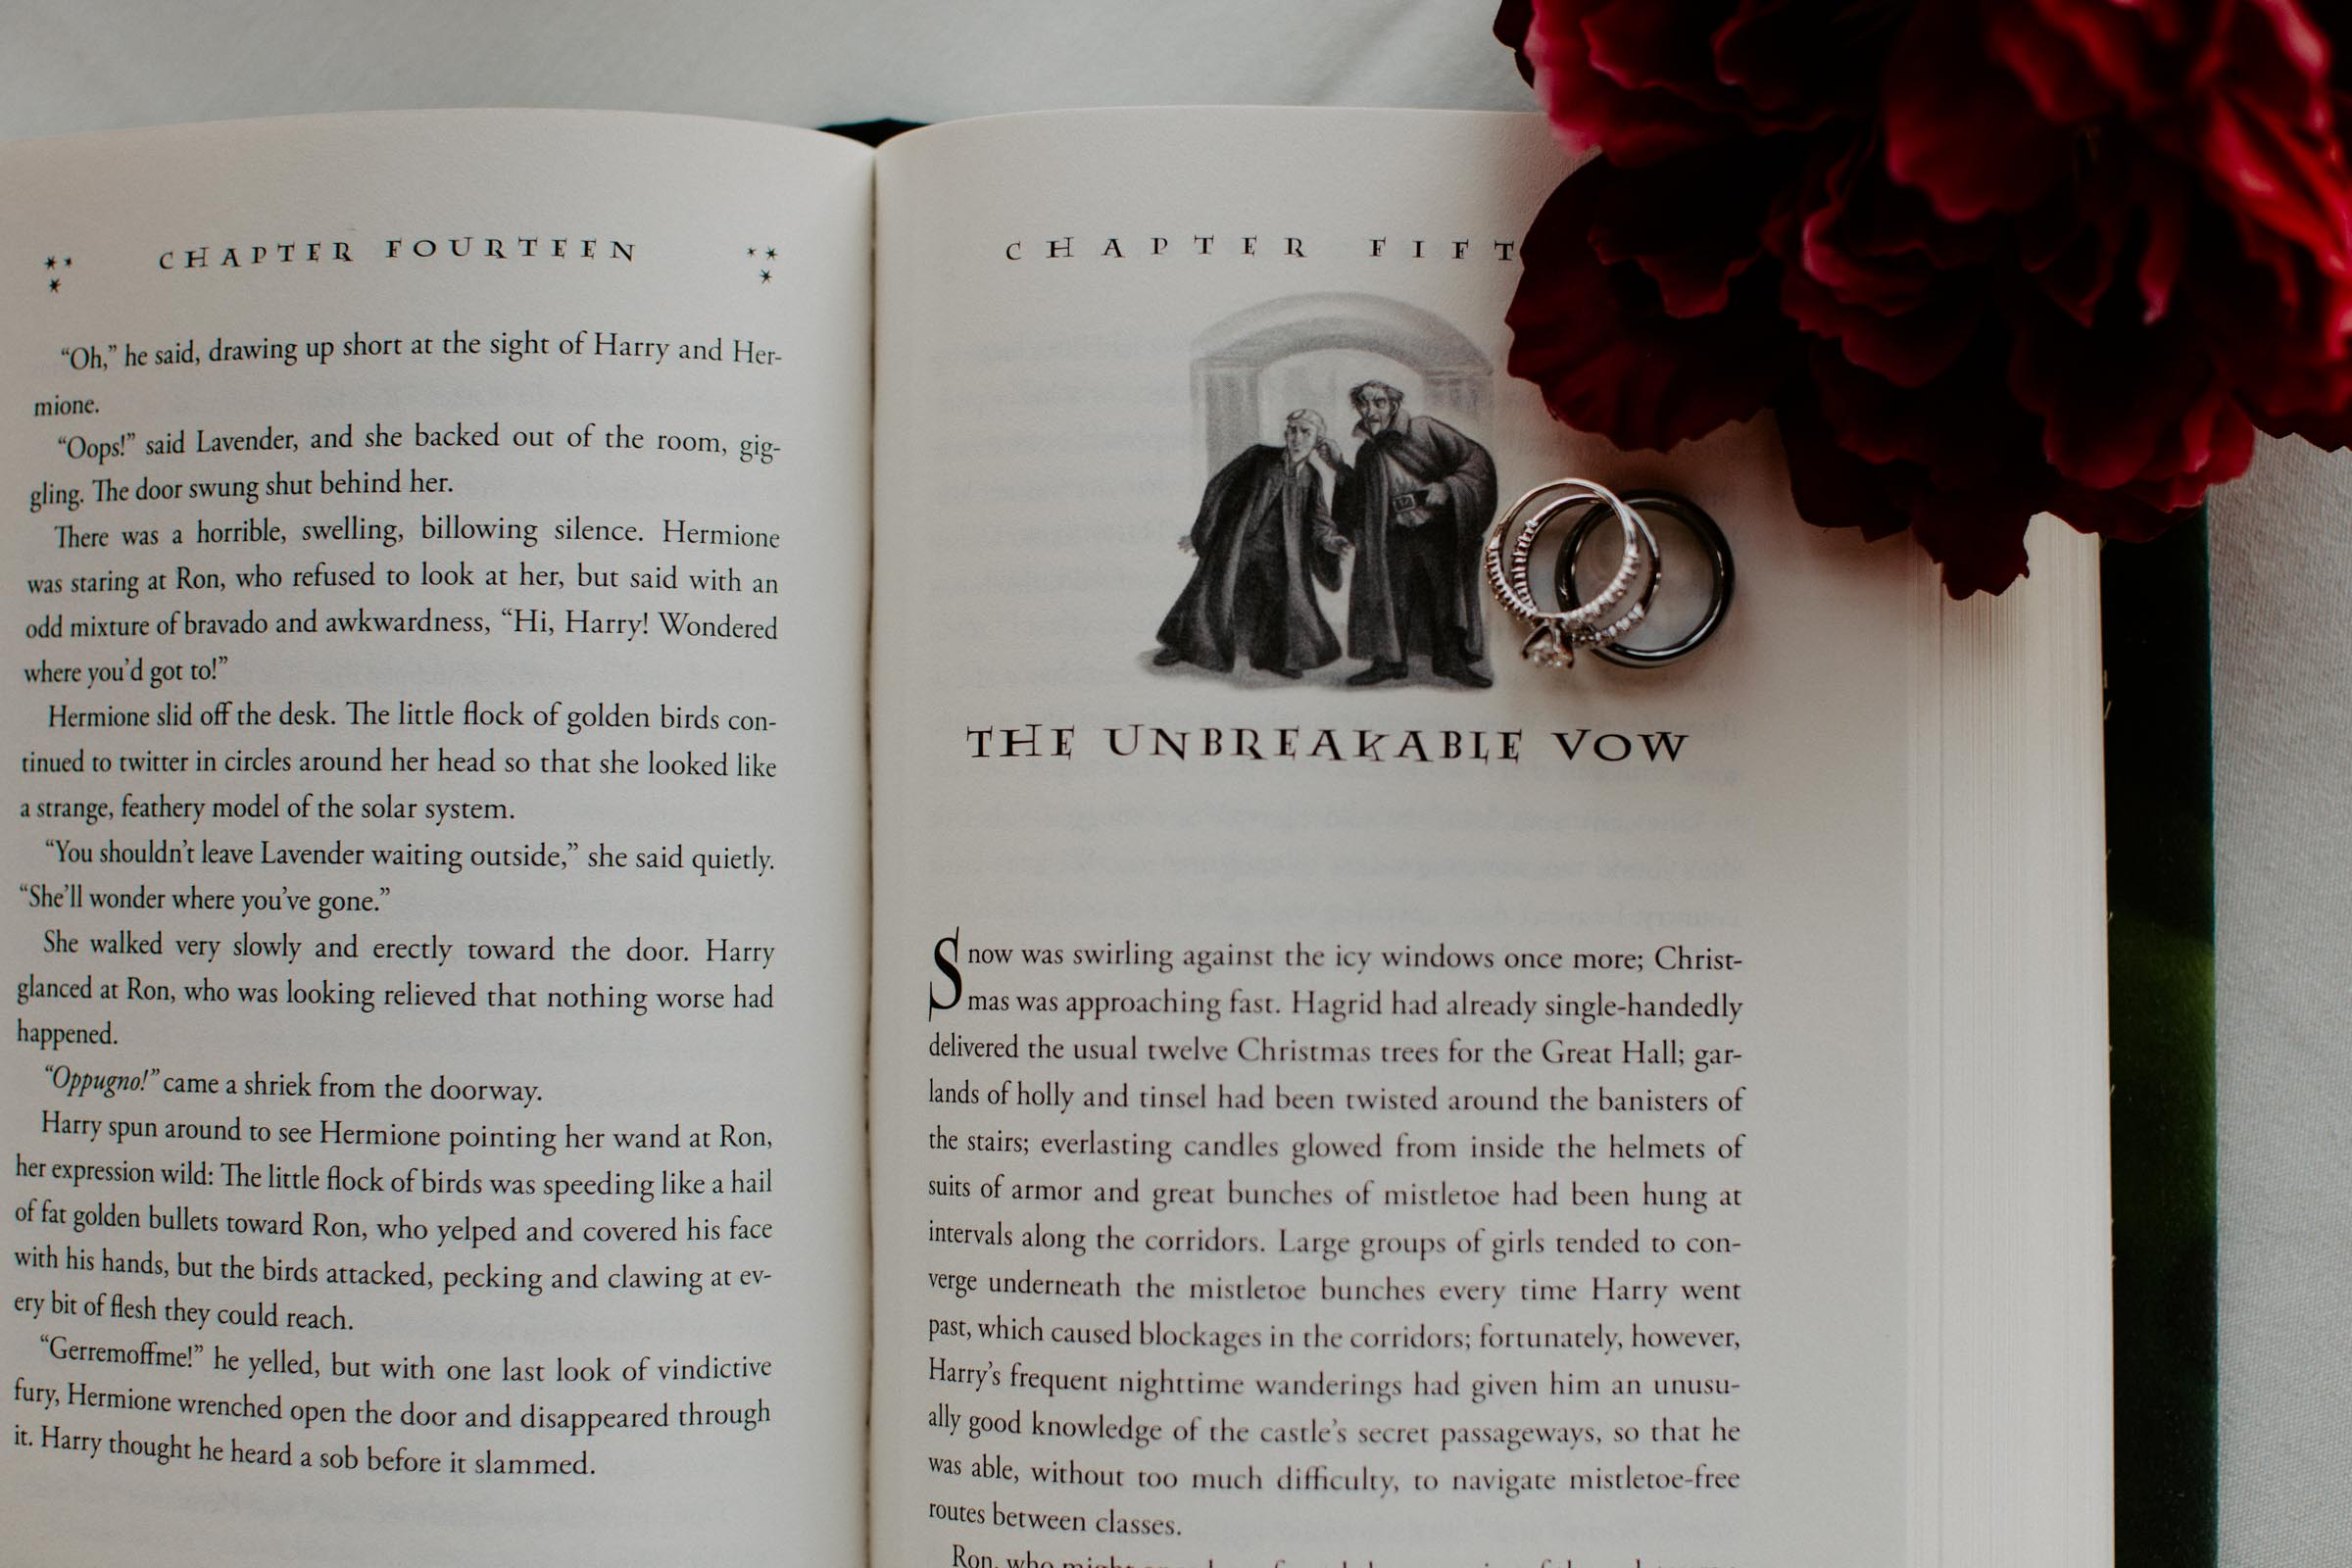 harry potter book - unbreakable vow with wedding rings on DFW wedding day